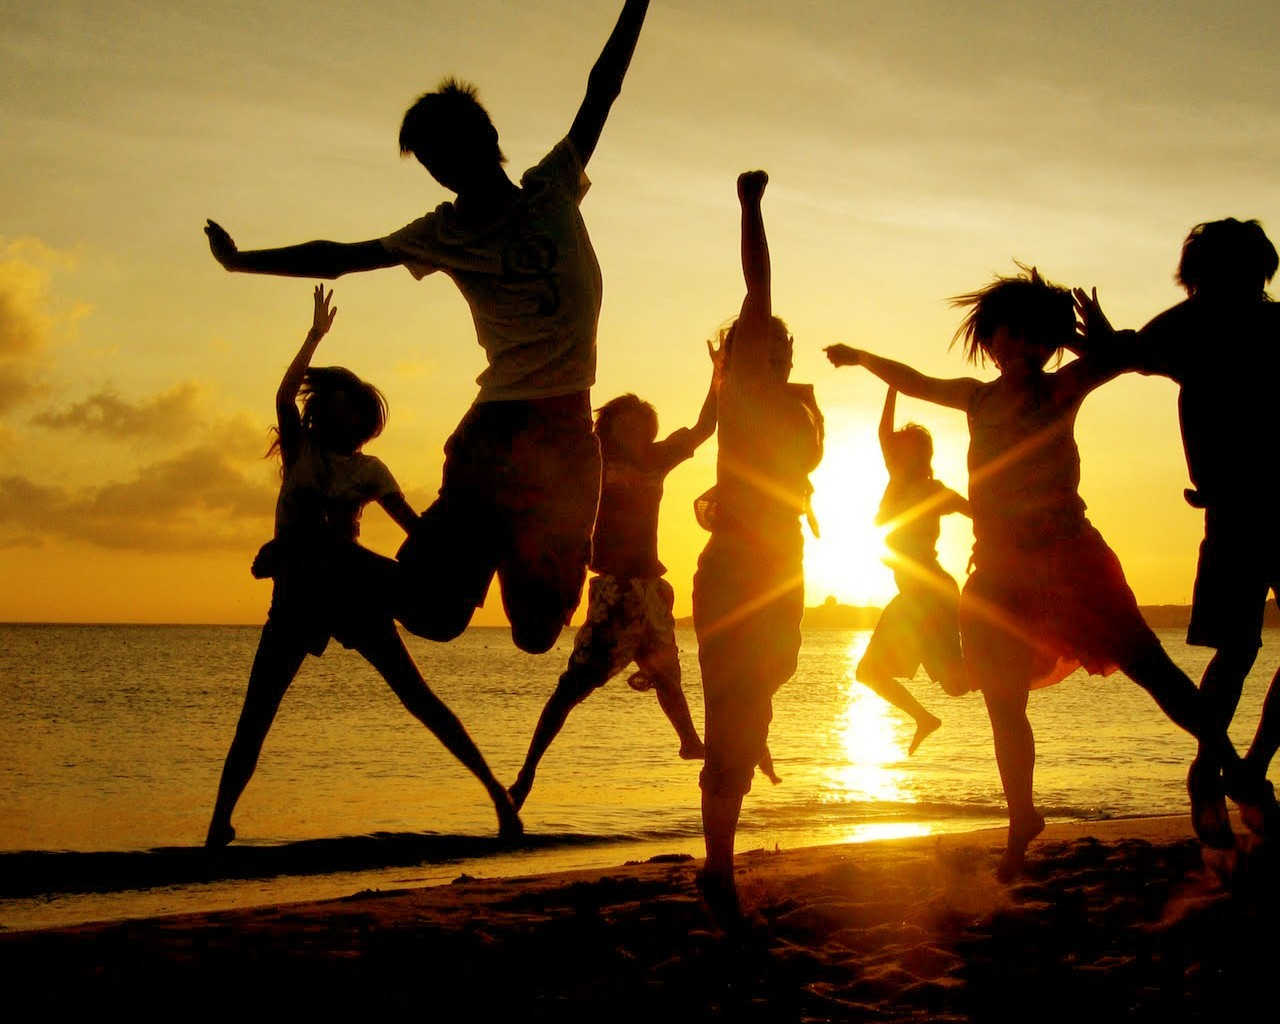 sunset silhouettes jumping arms HD Wallpaper